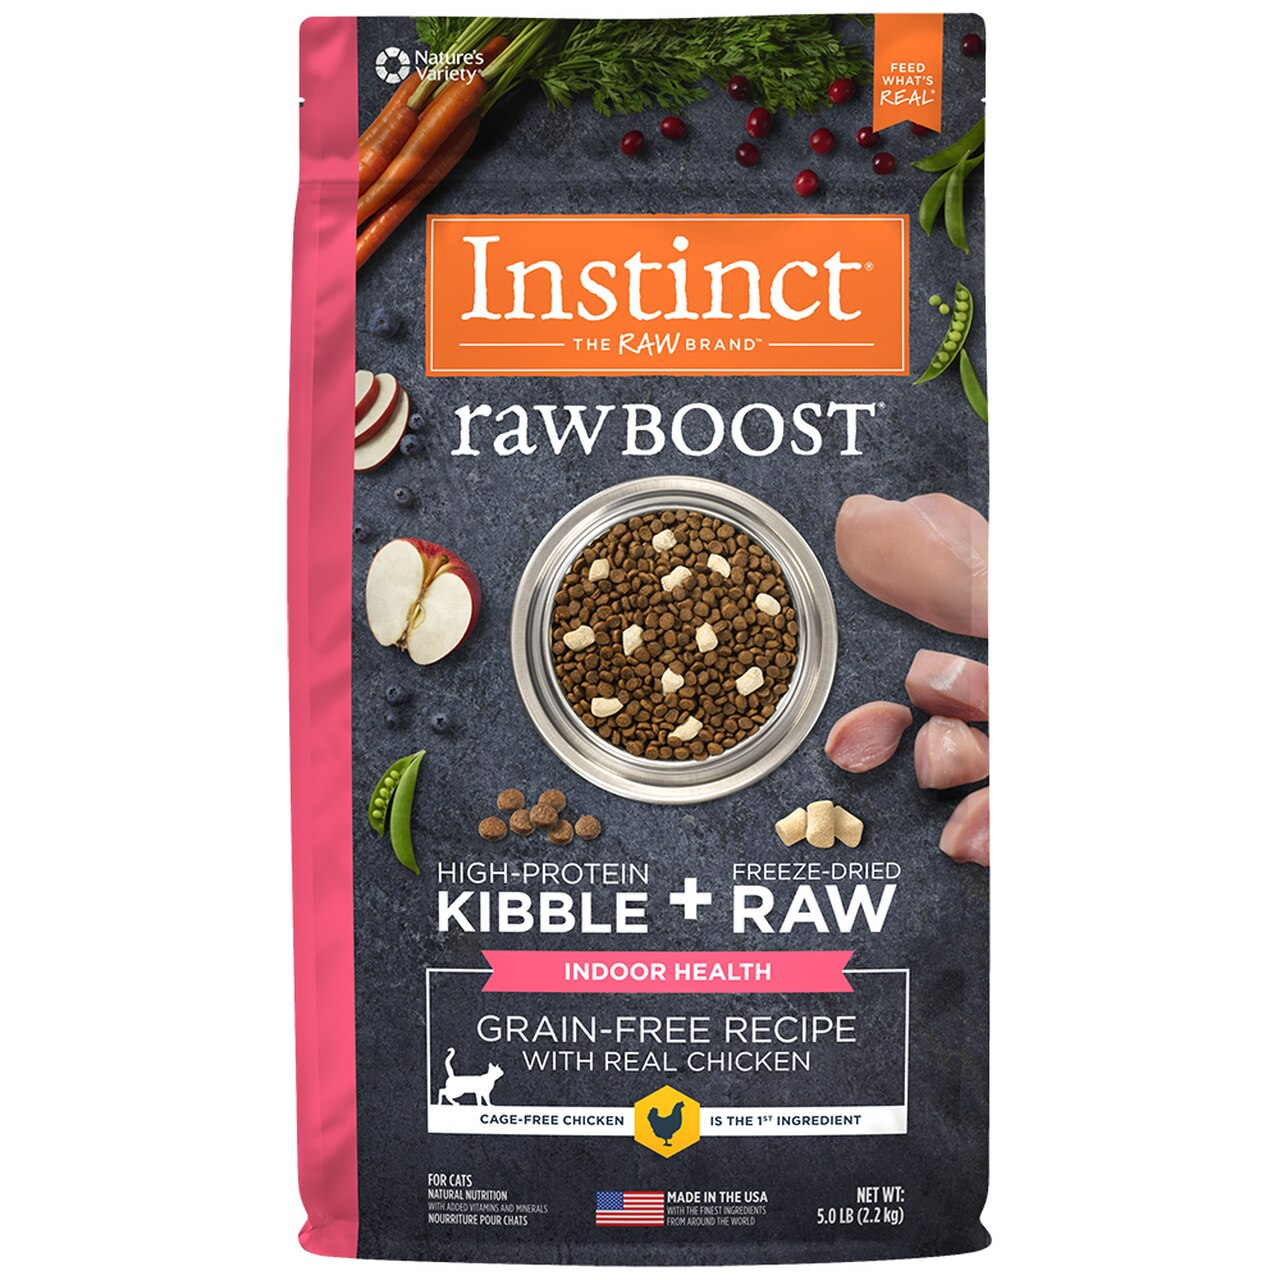 Instinct by Nature's Variety Raw Boost Indoor Health Grain-Free Recipe with Real Chicken Dry Cat Food Image